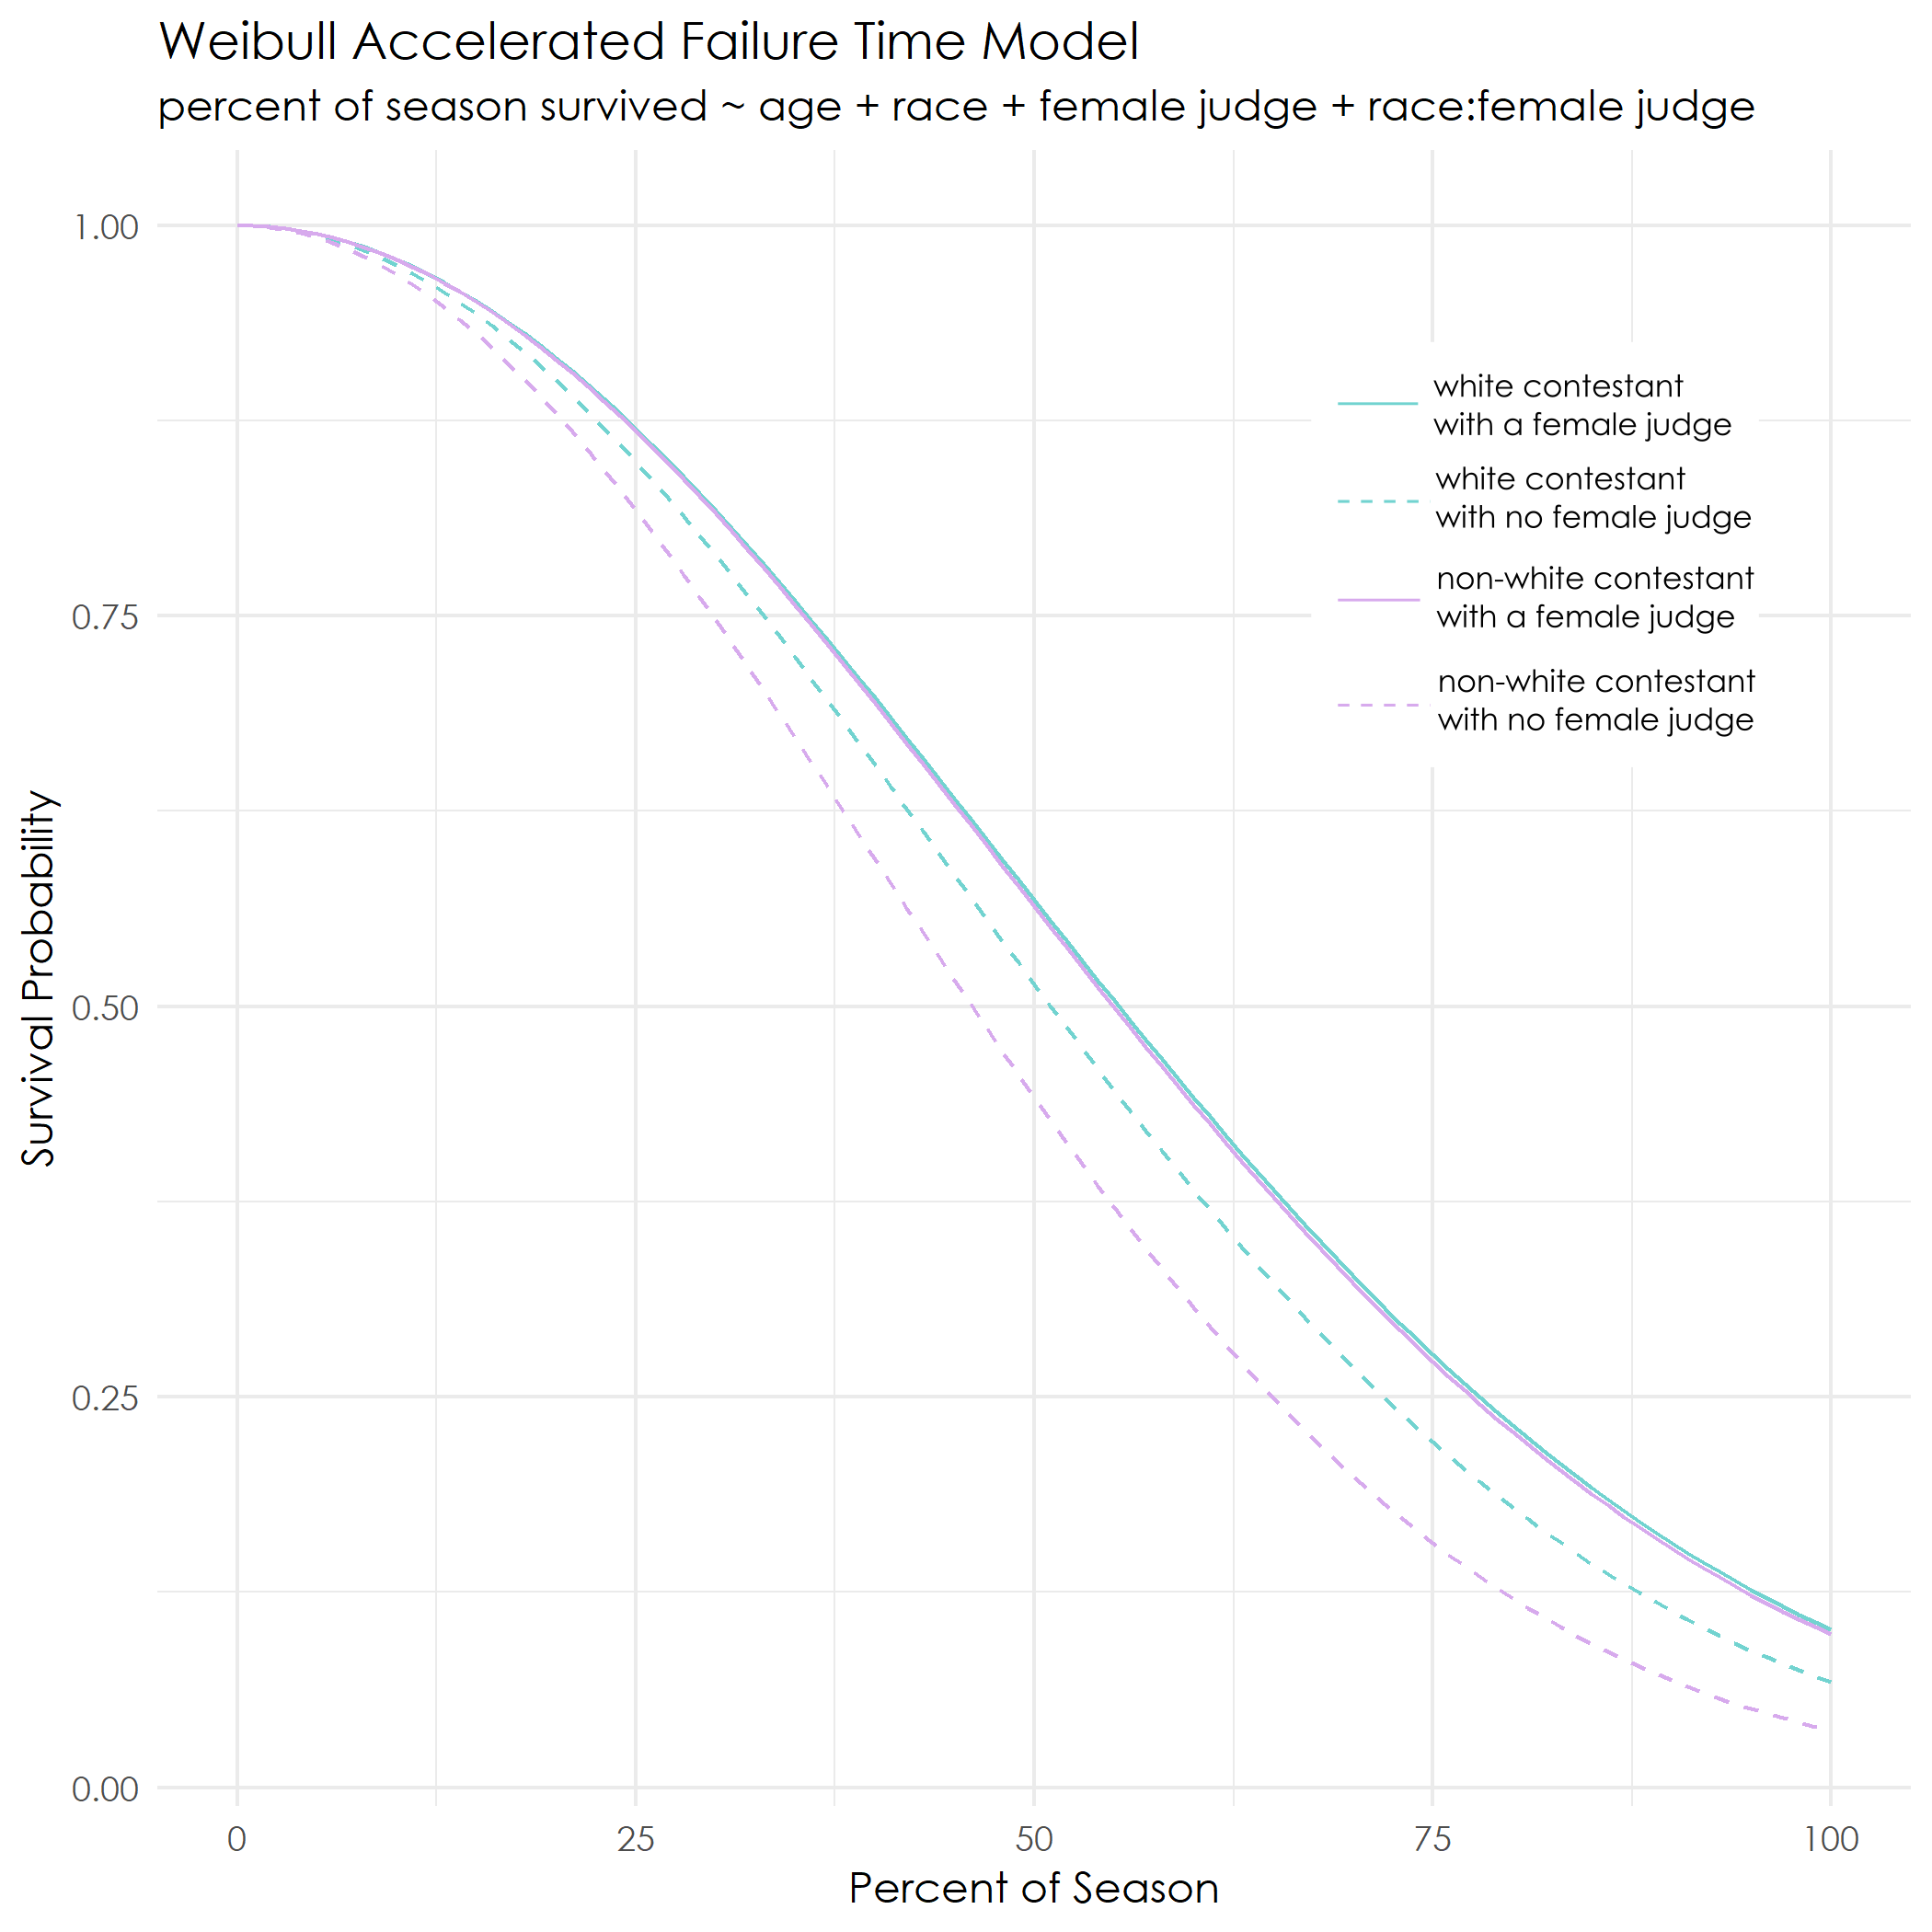 model showing survival is better for POC contestants with a female judge